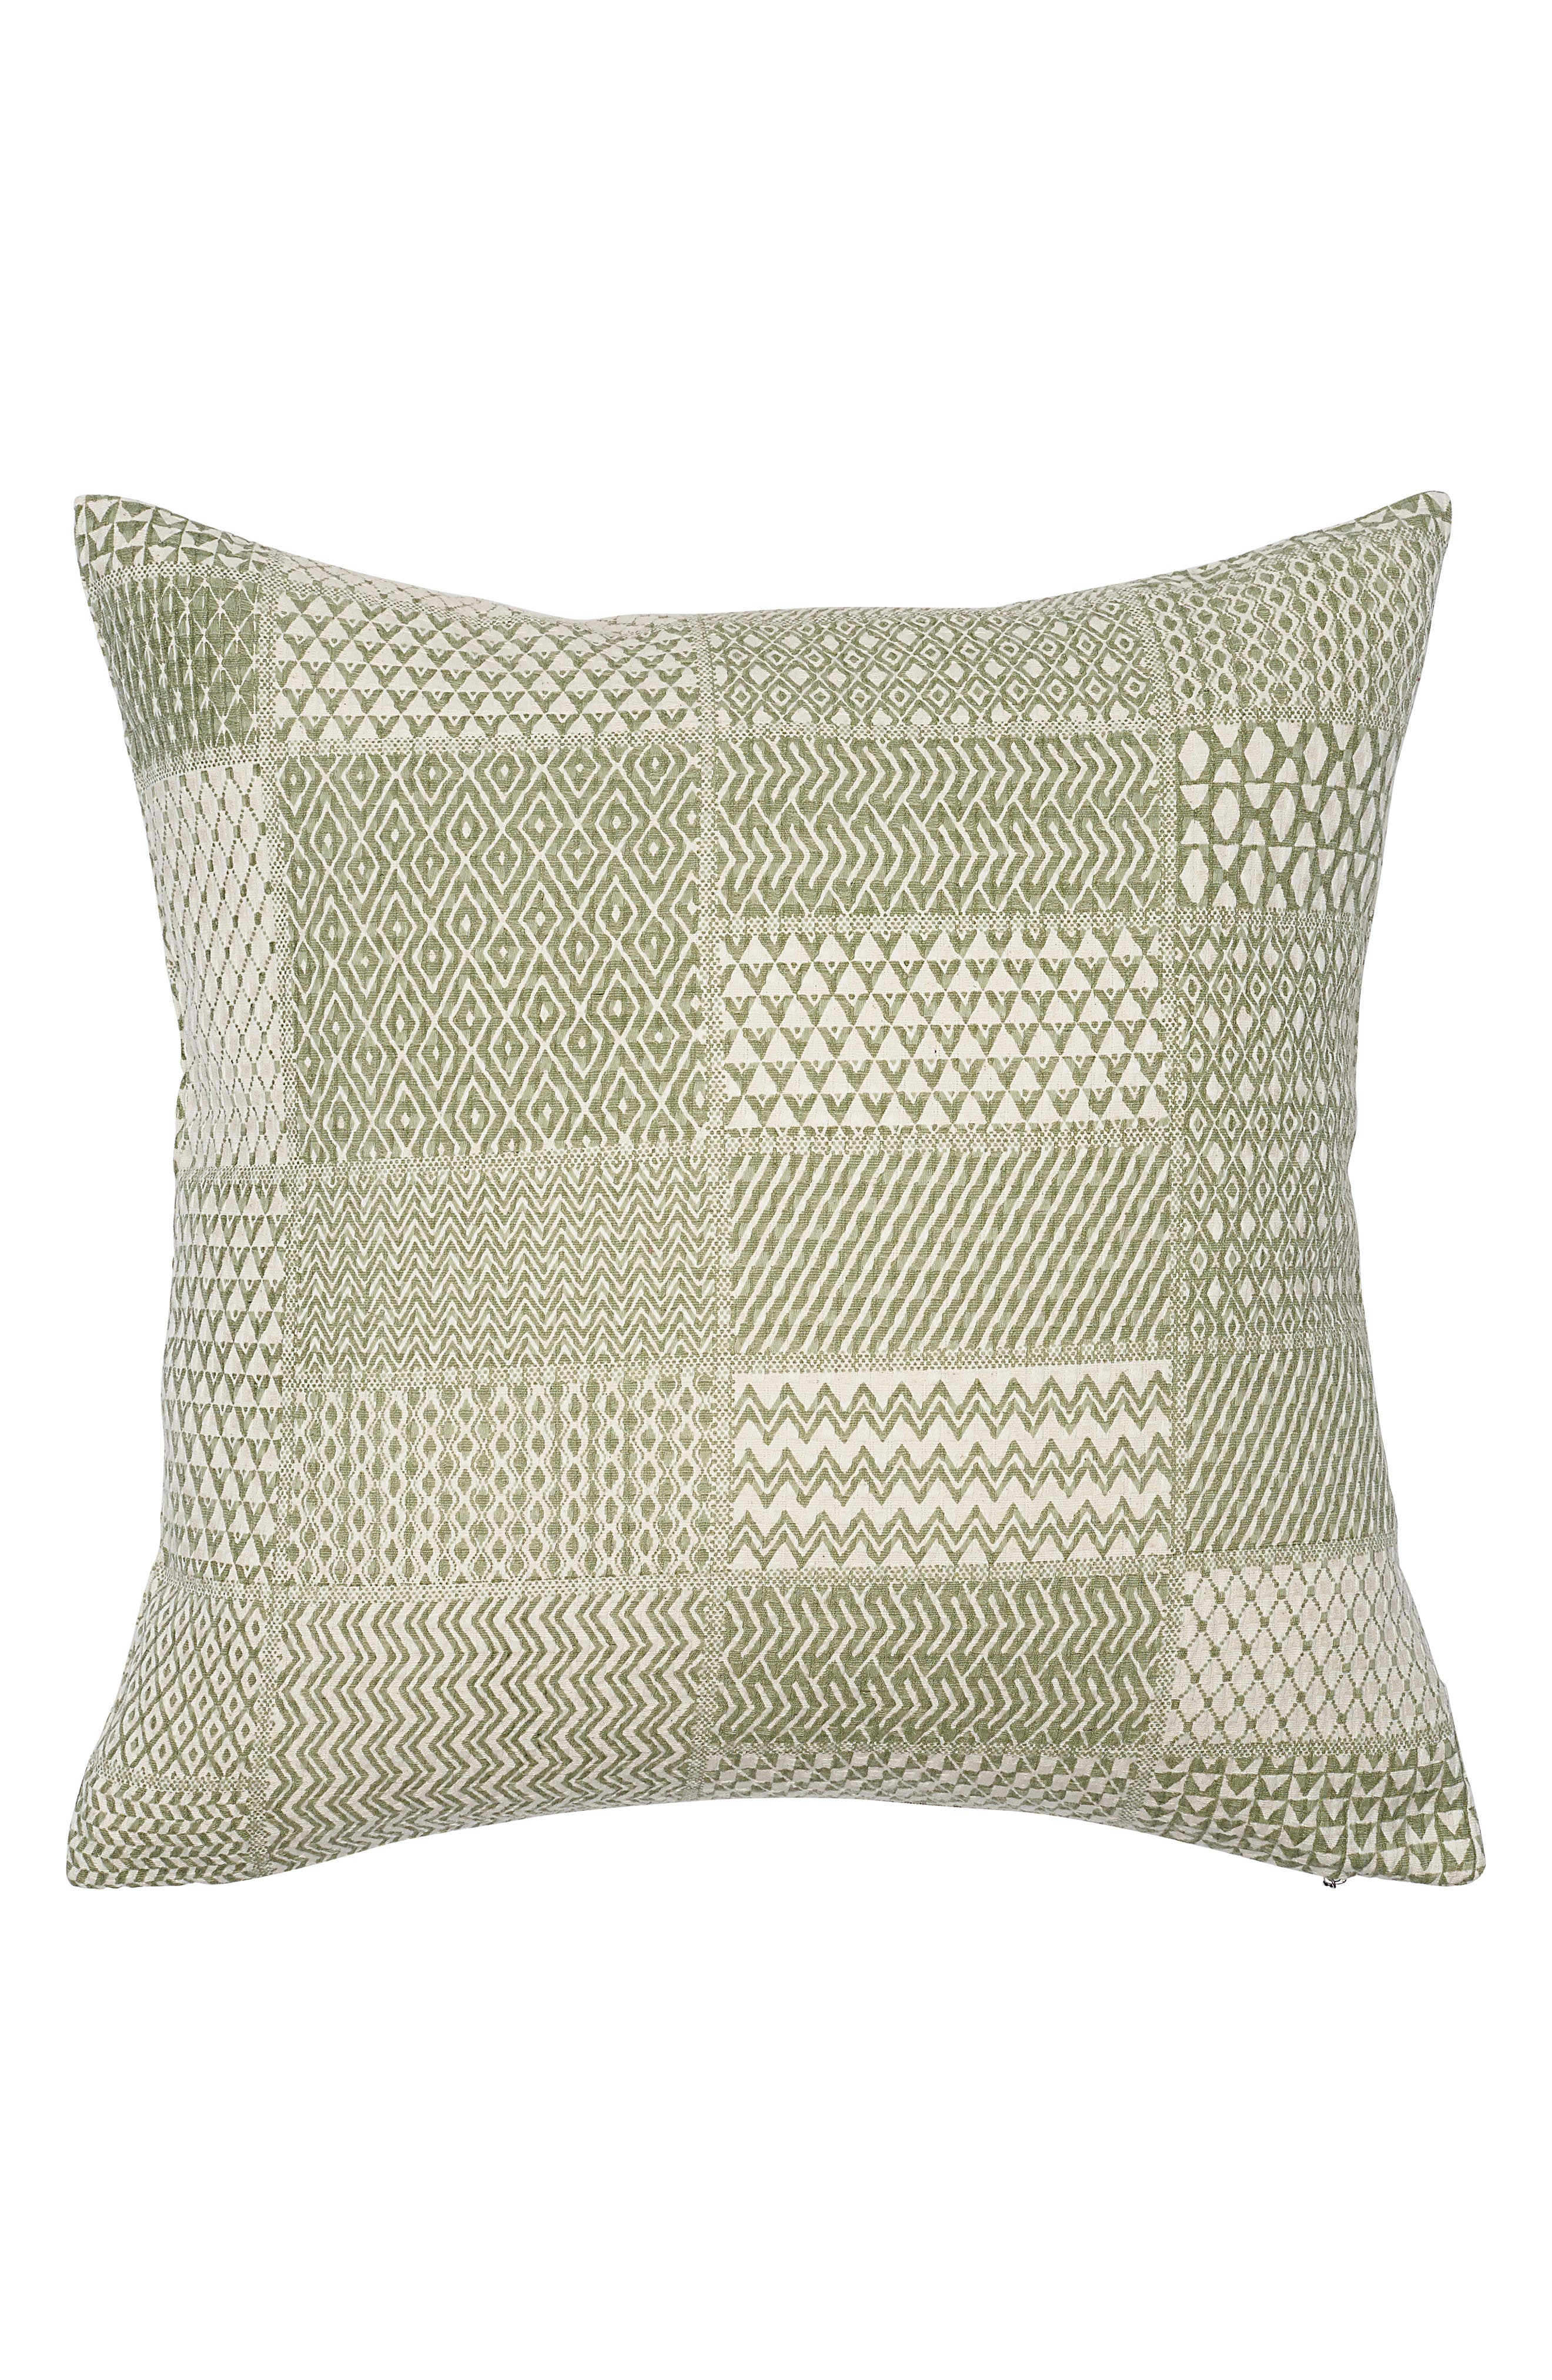 EADIE LIFESTYLE Tiptoe Scatter Accent Pillow, Main, color, SAGE/ WHITE